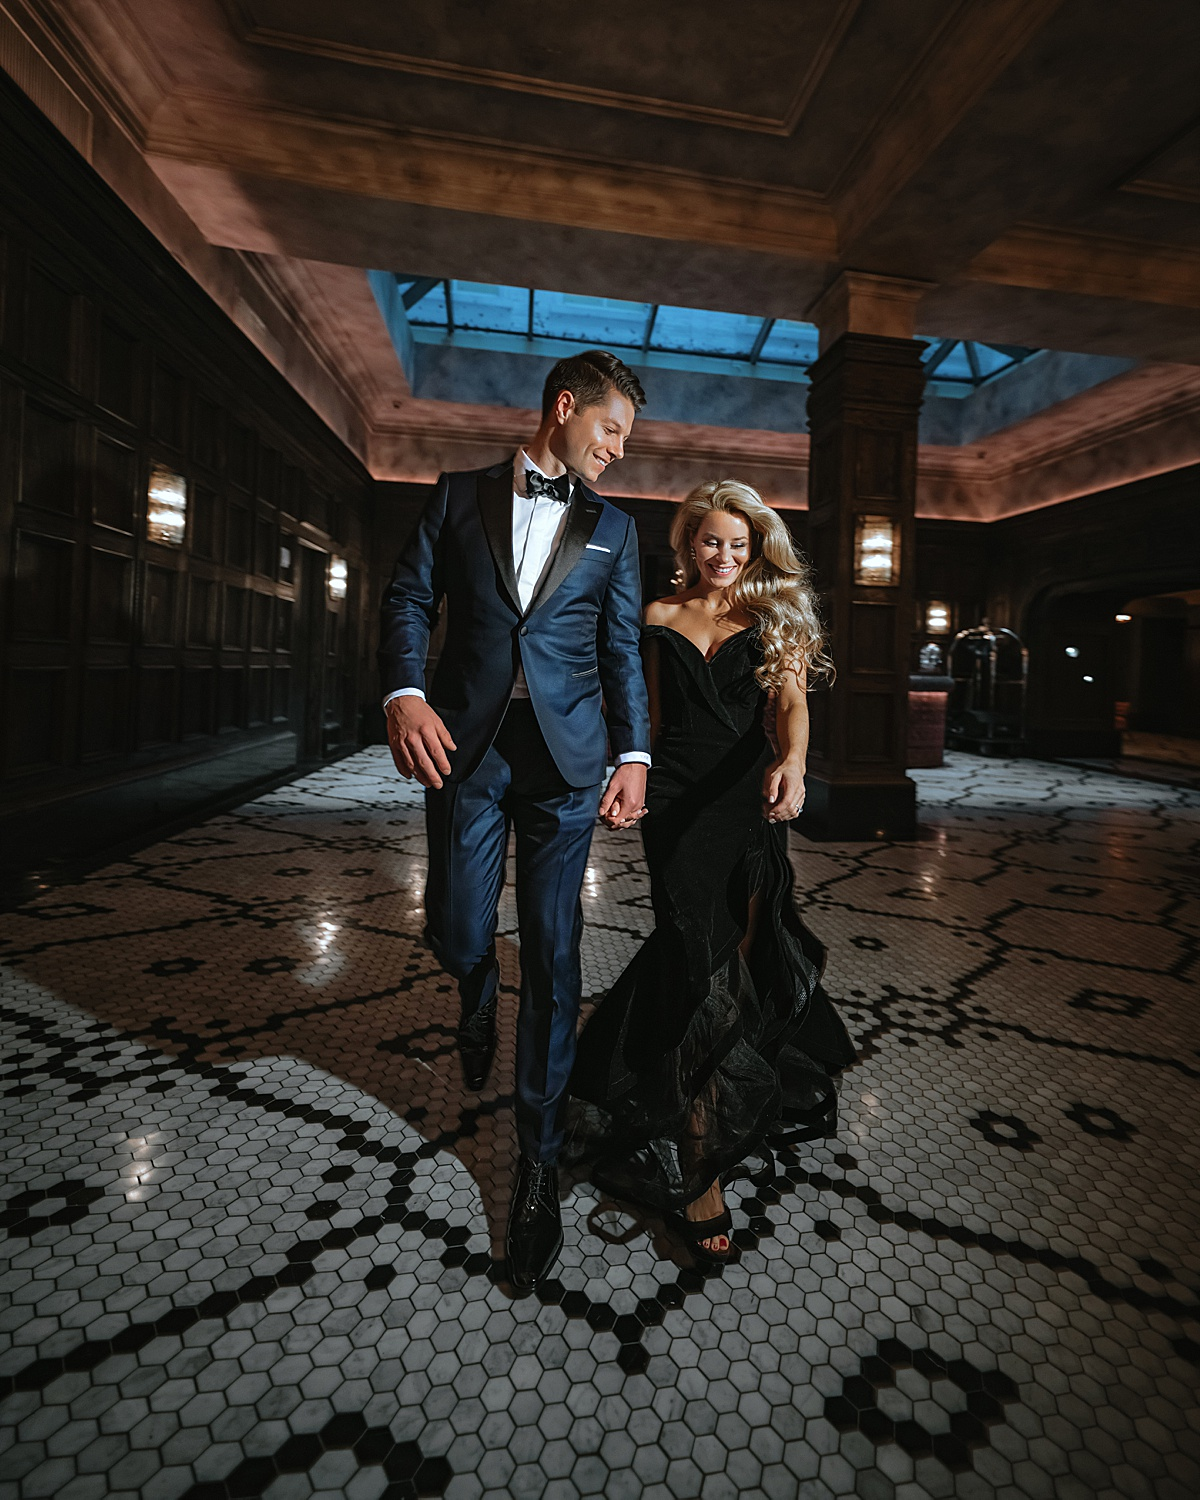 engagement pictures, engagement shoot, engaged 2020, engagement photos, olivia rink engagement, olivia rink engagement pictures, engagement outfit ideas, the beekman hotel, mac duggal, balani tux